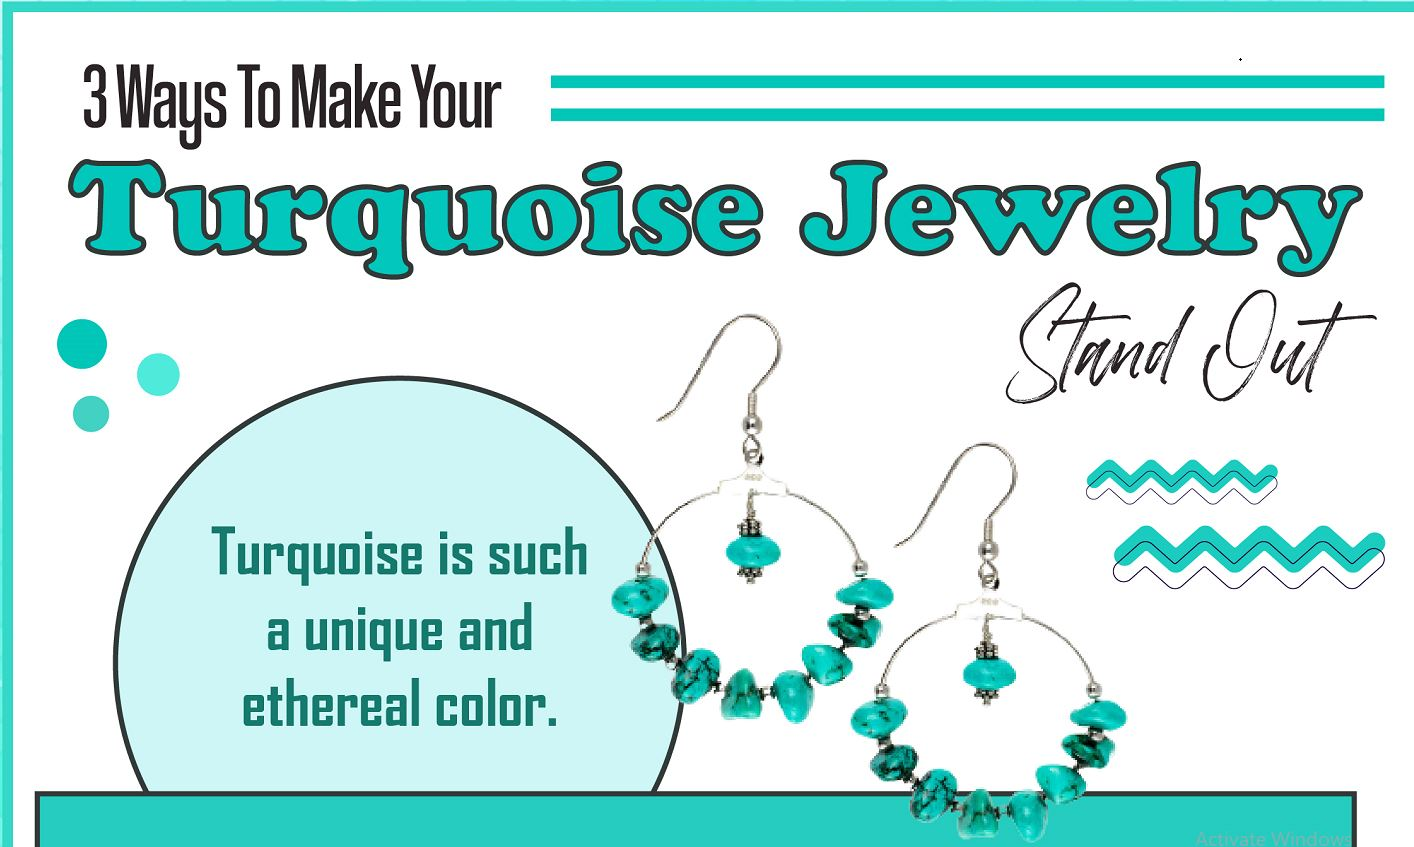 3 Ways To Make Your Turquoise Jewelry